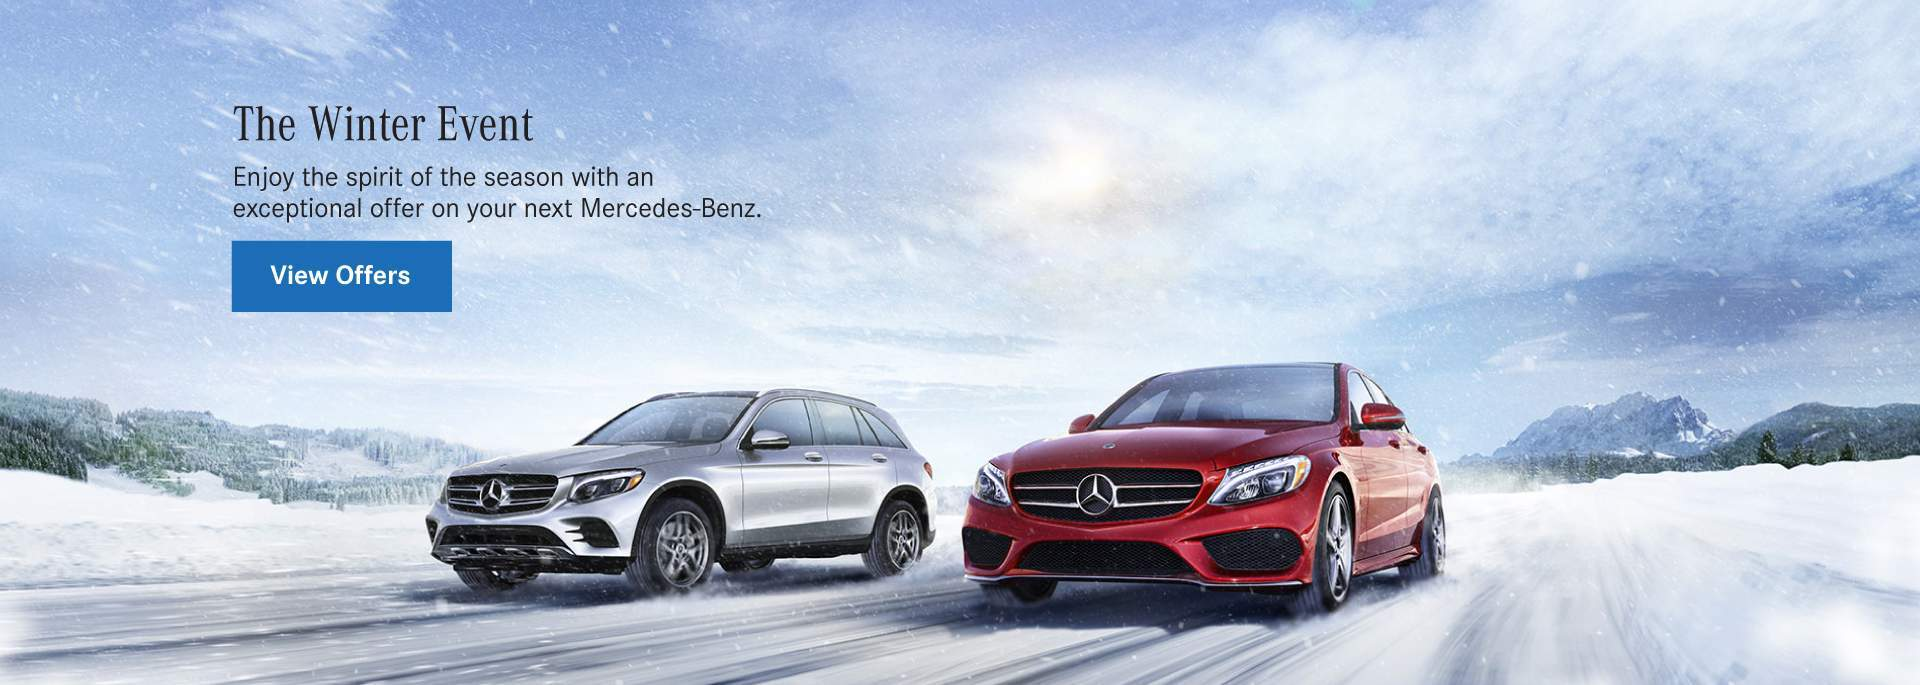 Mercedes benz of portsmouth luxury new and used car for Mercedes benz lease seattle